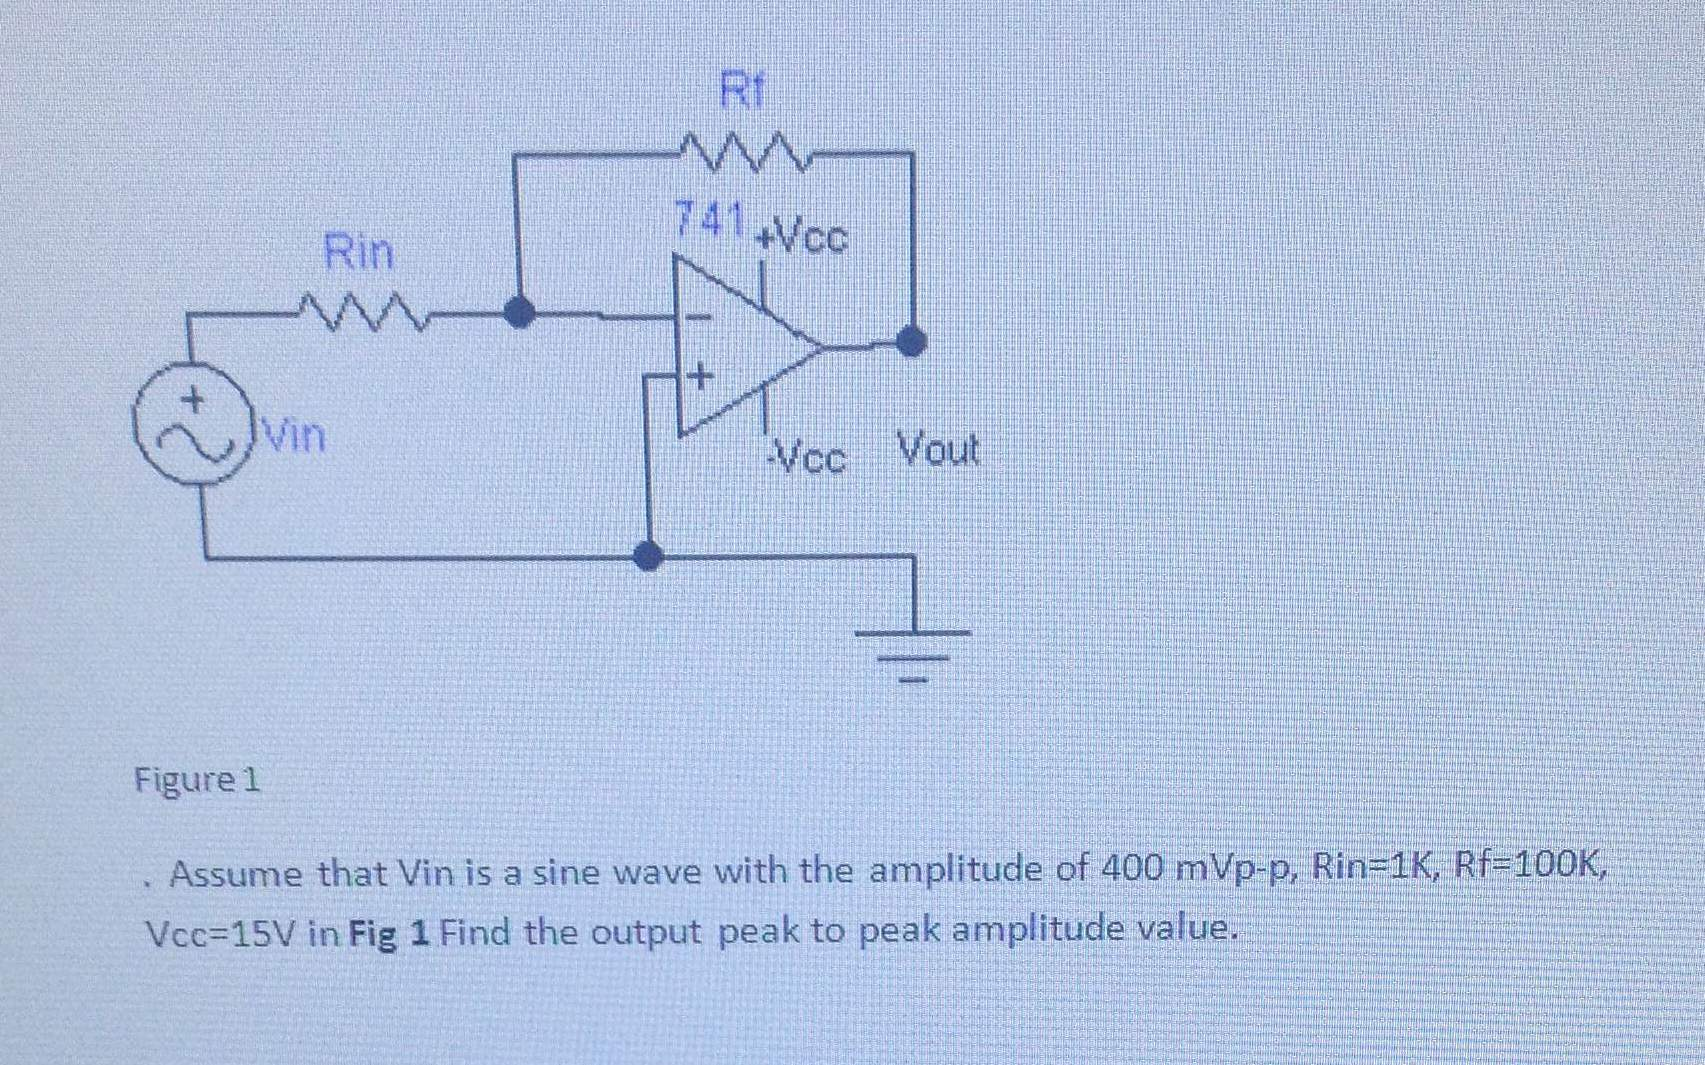 Assume that Vin is a sine wave with the amplitud